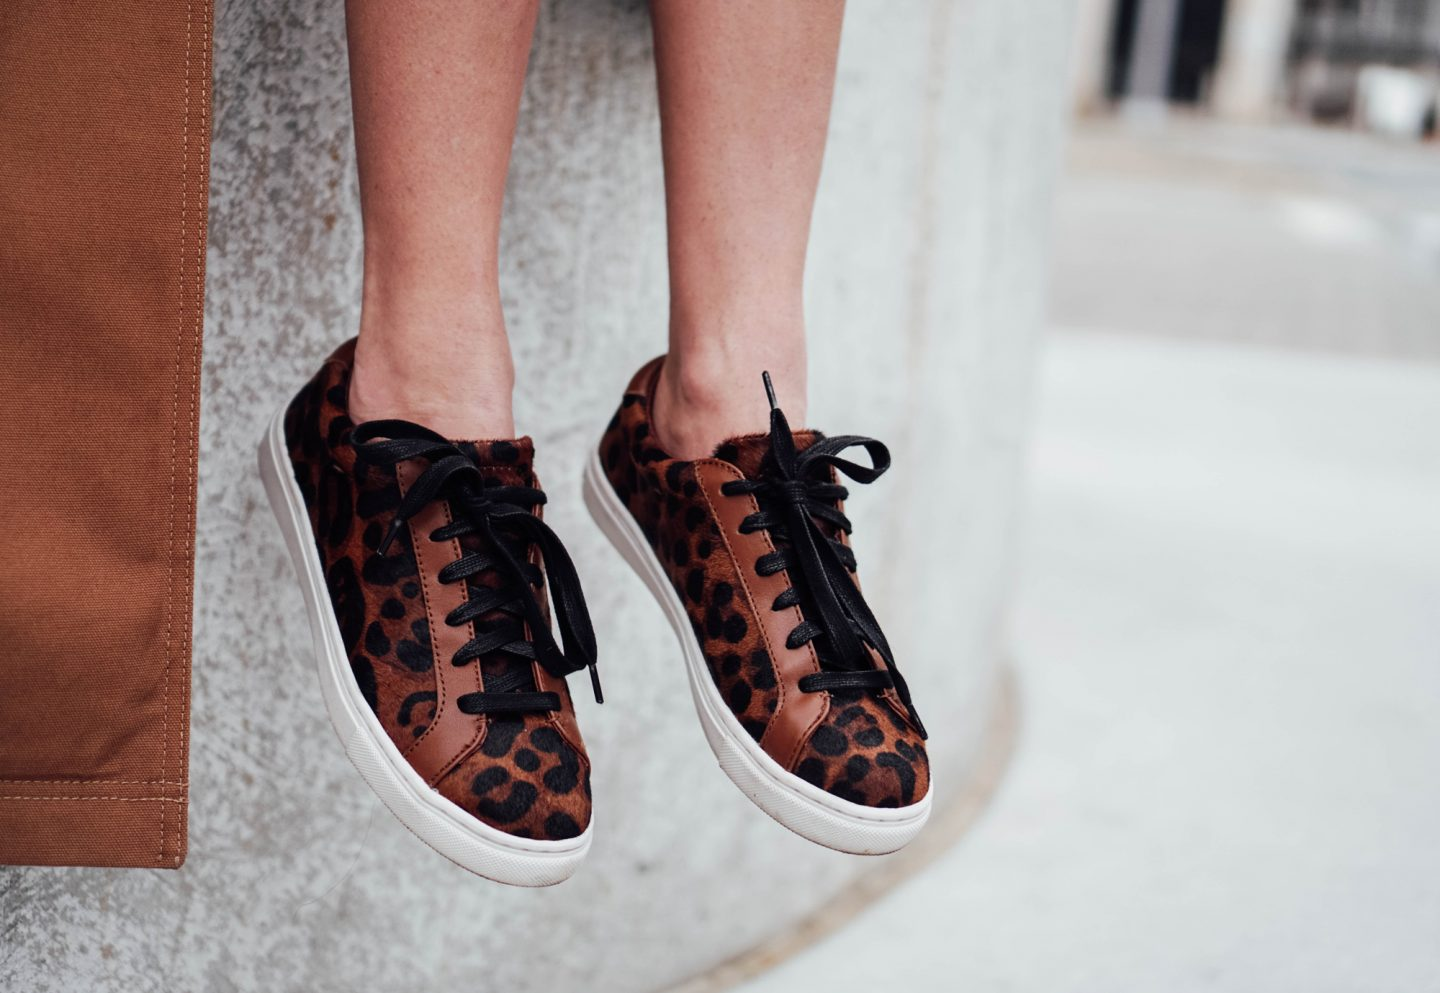 I am partnering with Marks and Spencer on TheDandyLiar.com to update my shoe wardrobe with some fresh new styles, like these gorgeous Leopard Print Lace Up Trainers.